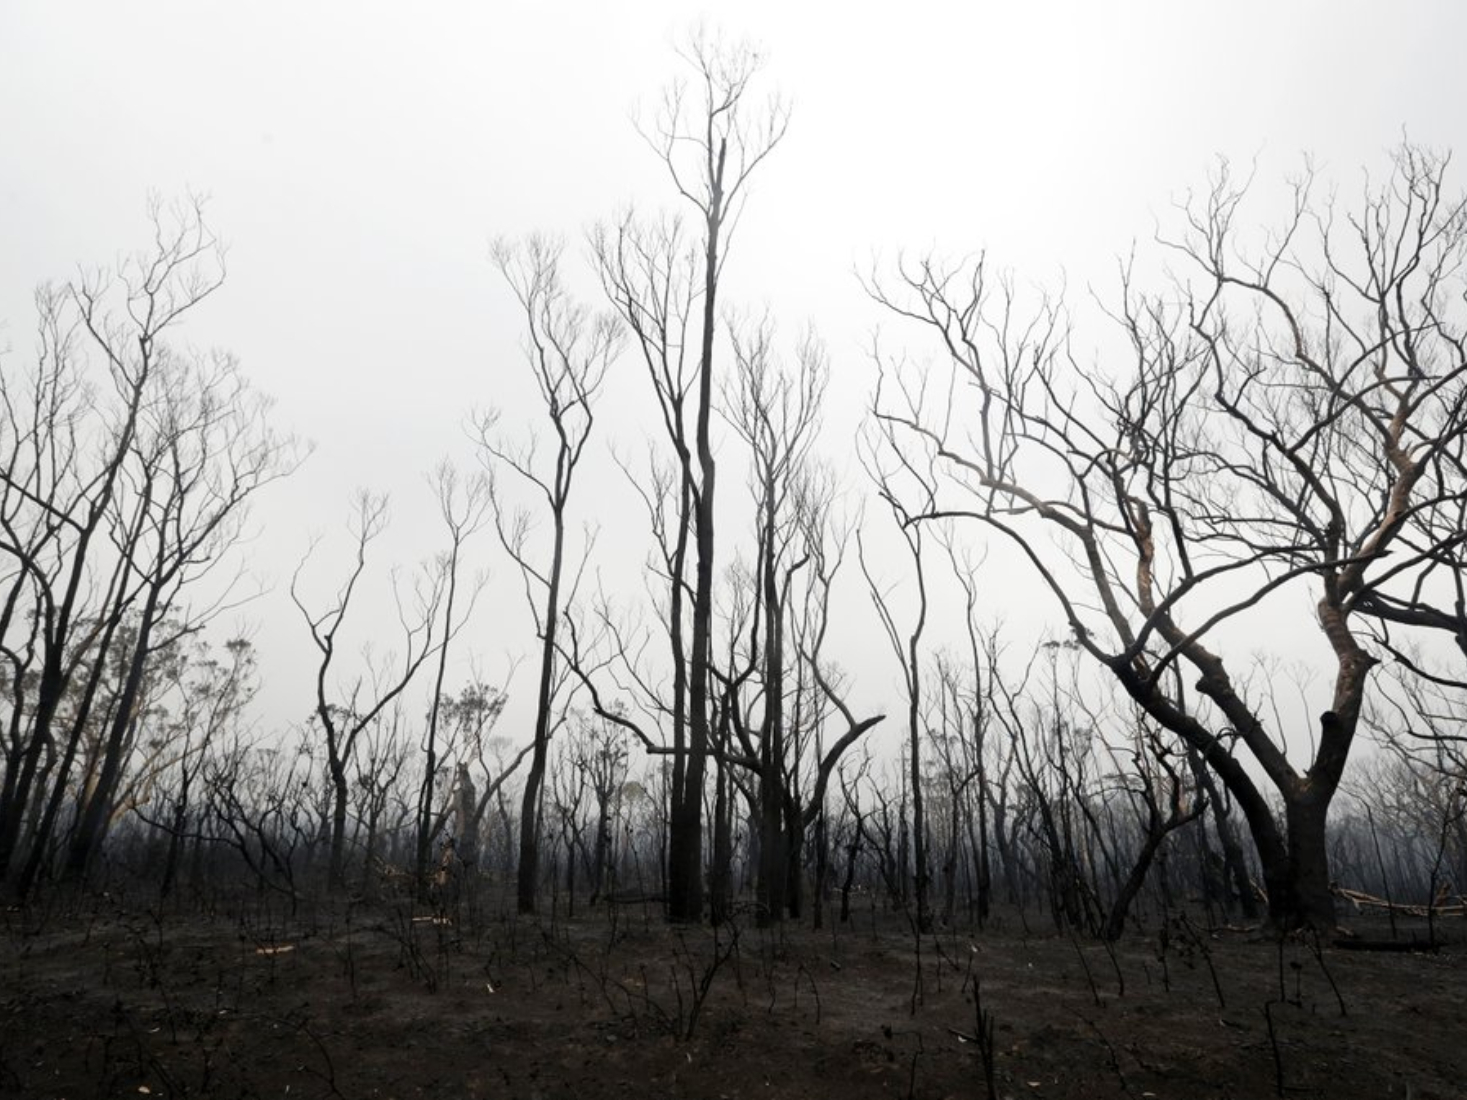 2 more missing in Australian wildfires as rain brings relief